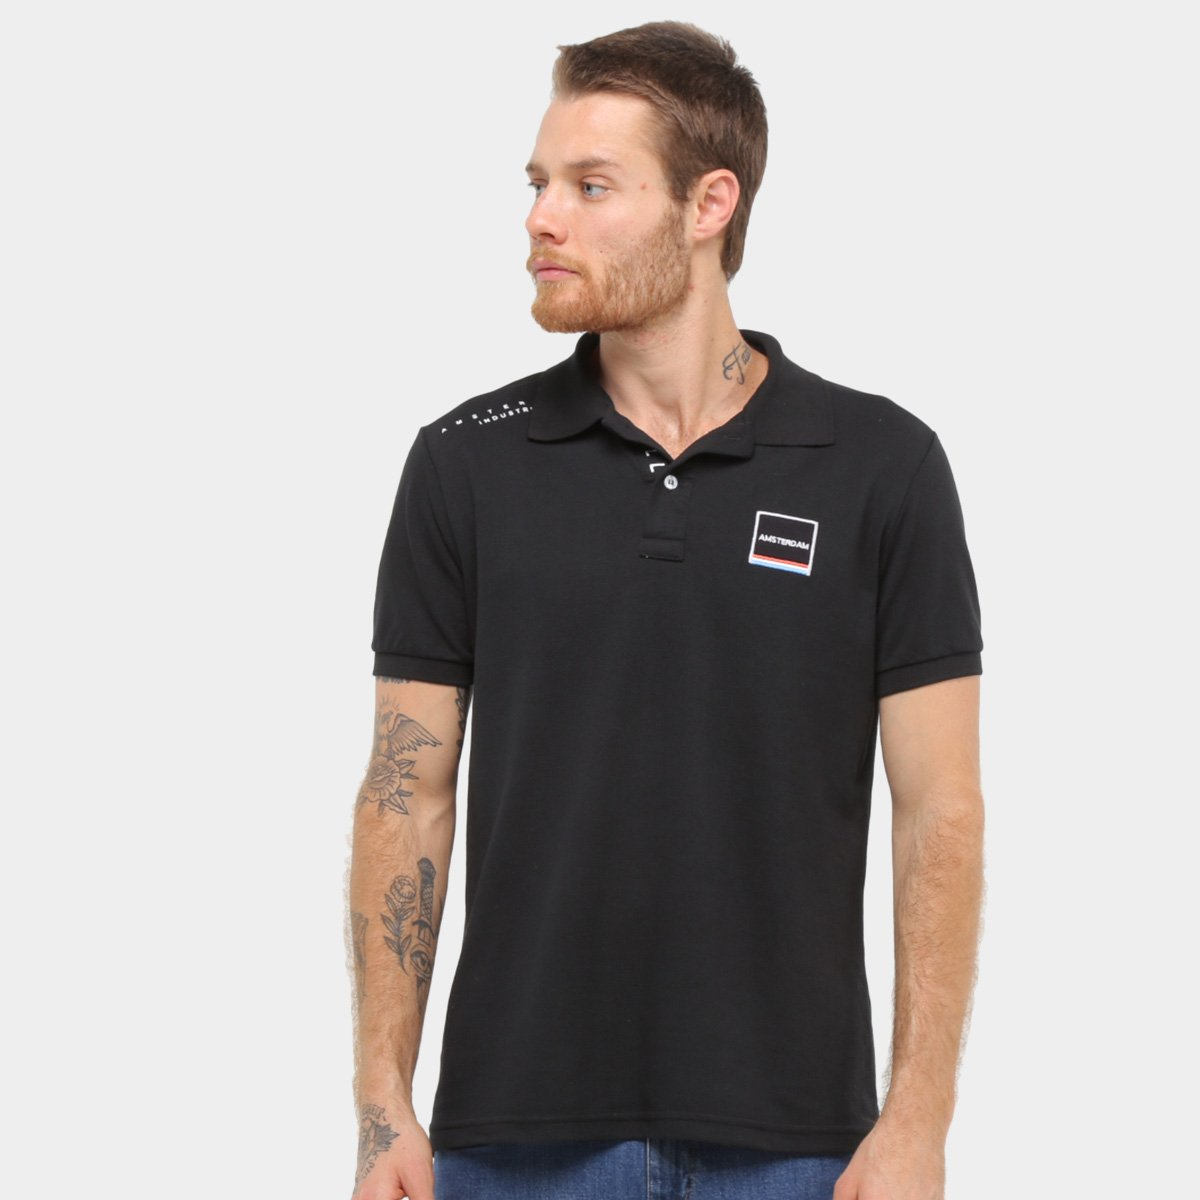 Camisa Polo Industrie Amsterdã Masculina